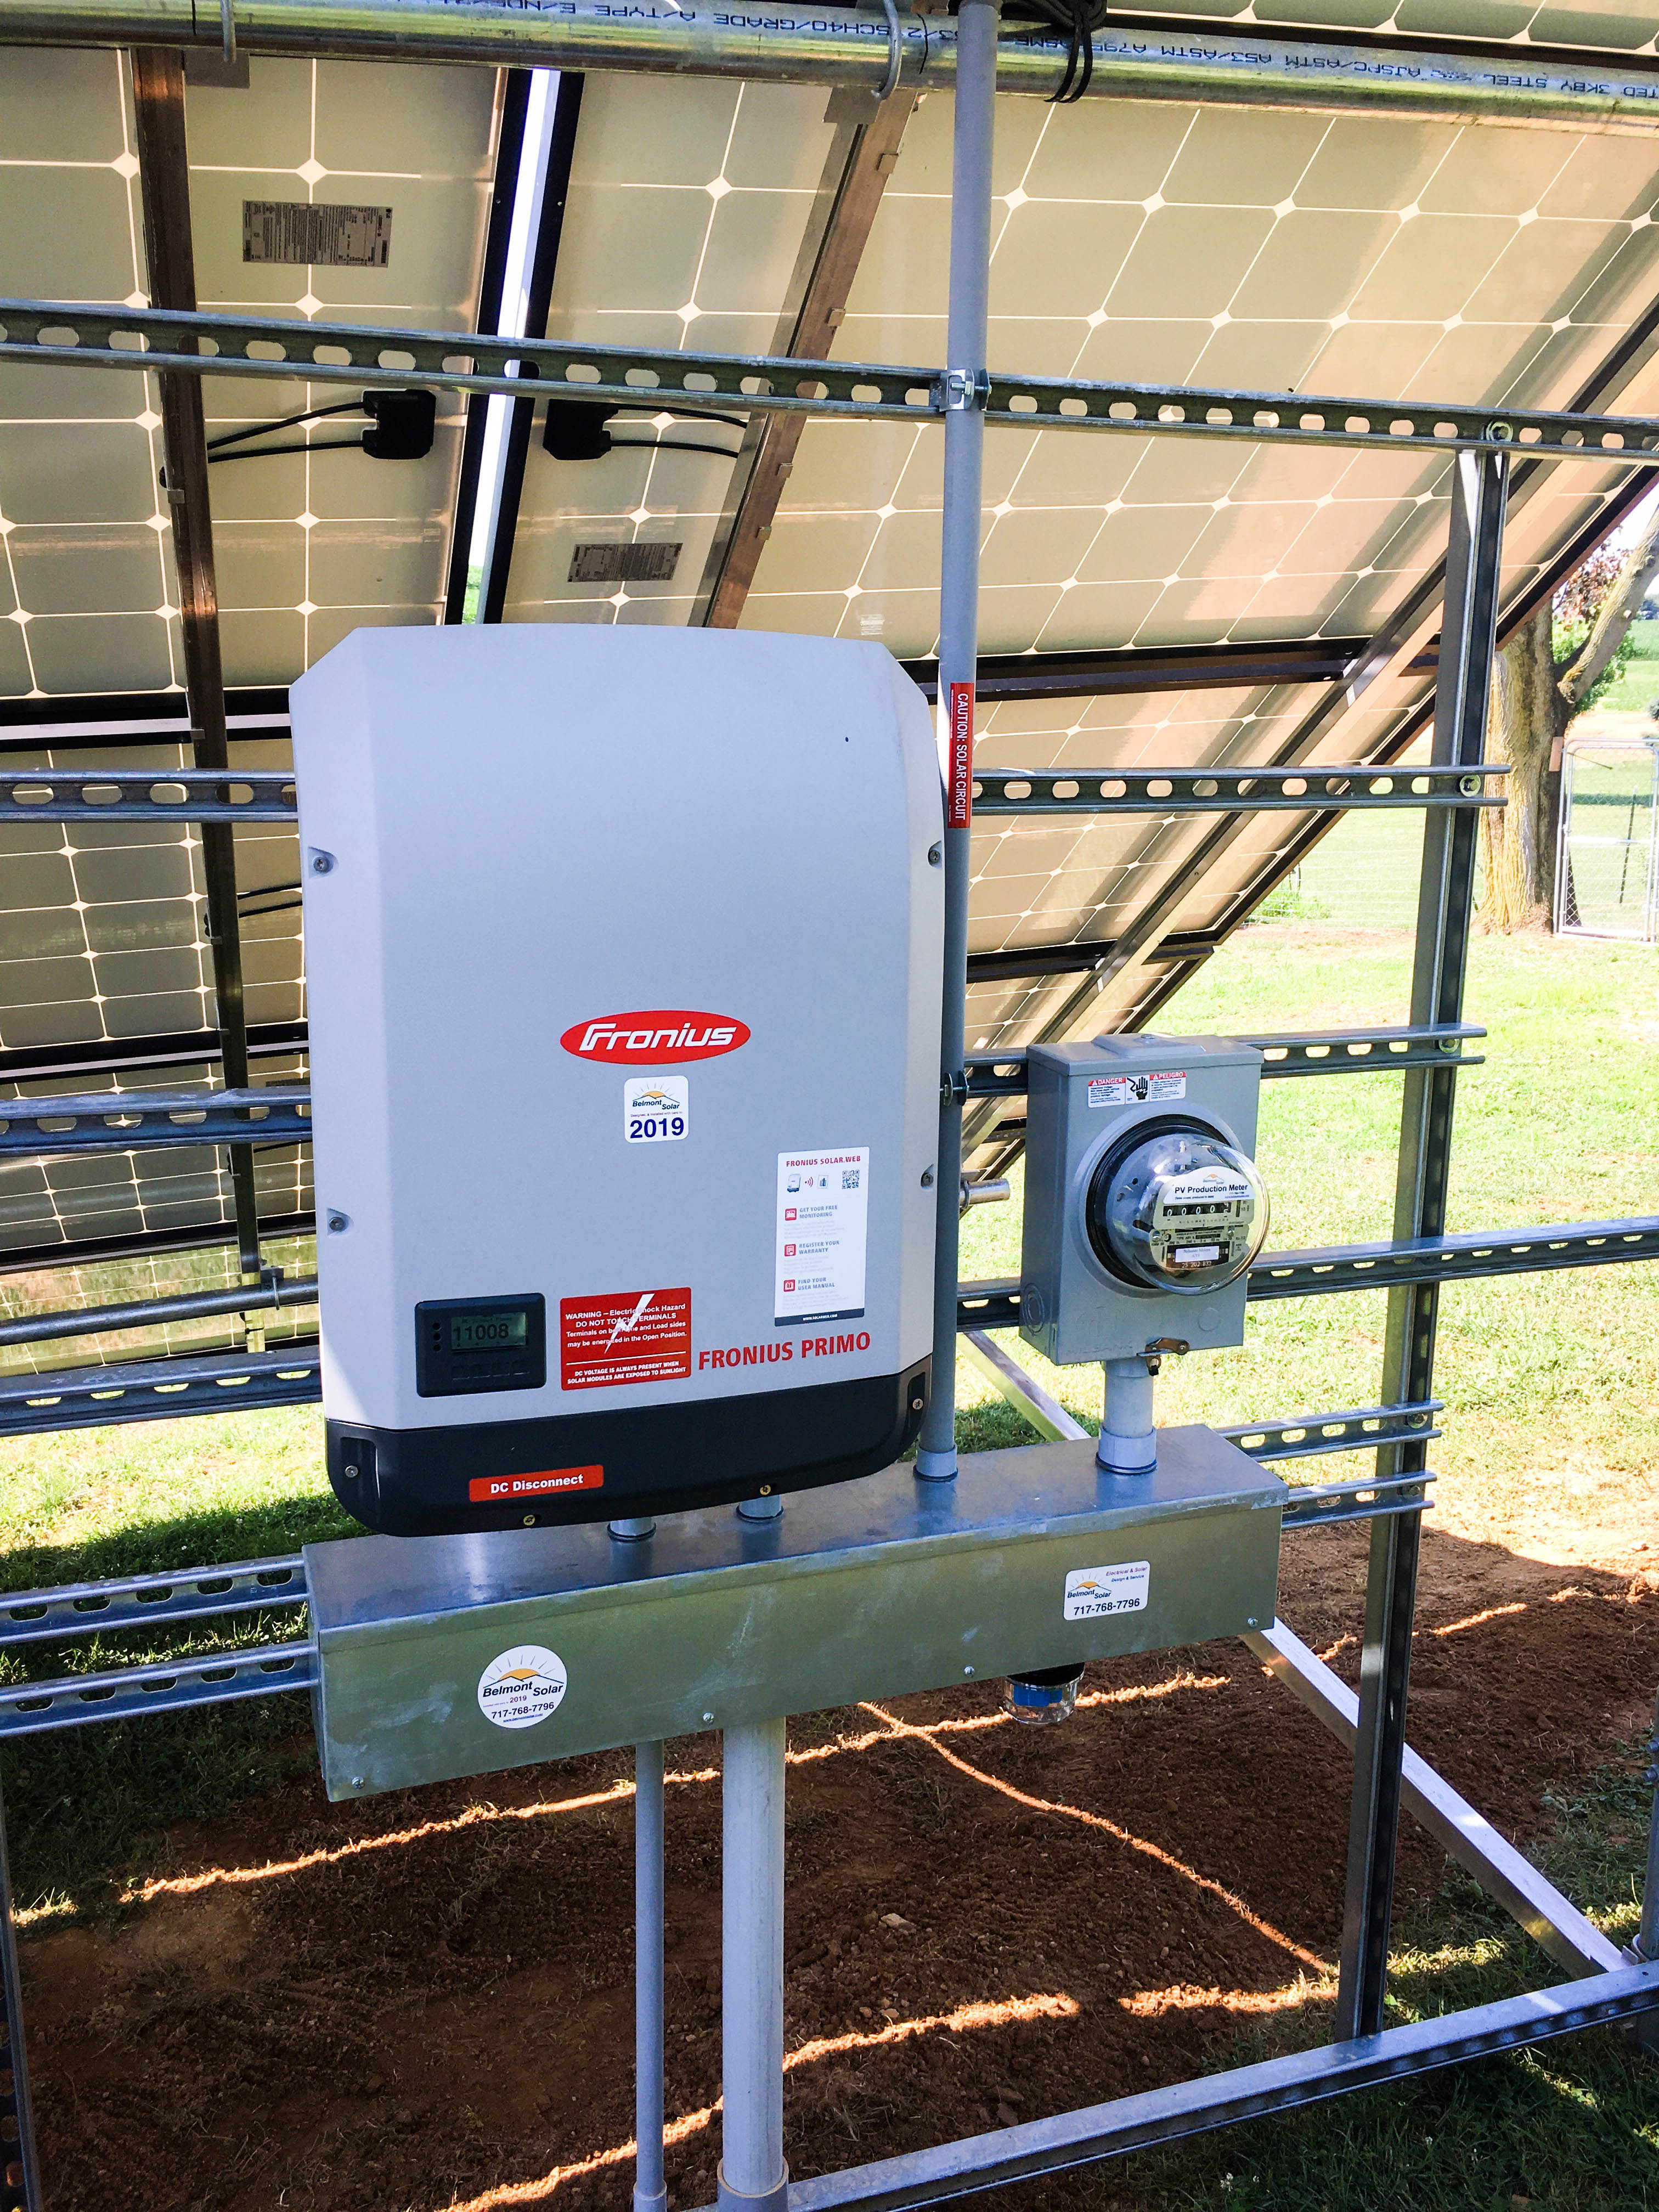 An inverter and net meter on a grid tied solar system array.